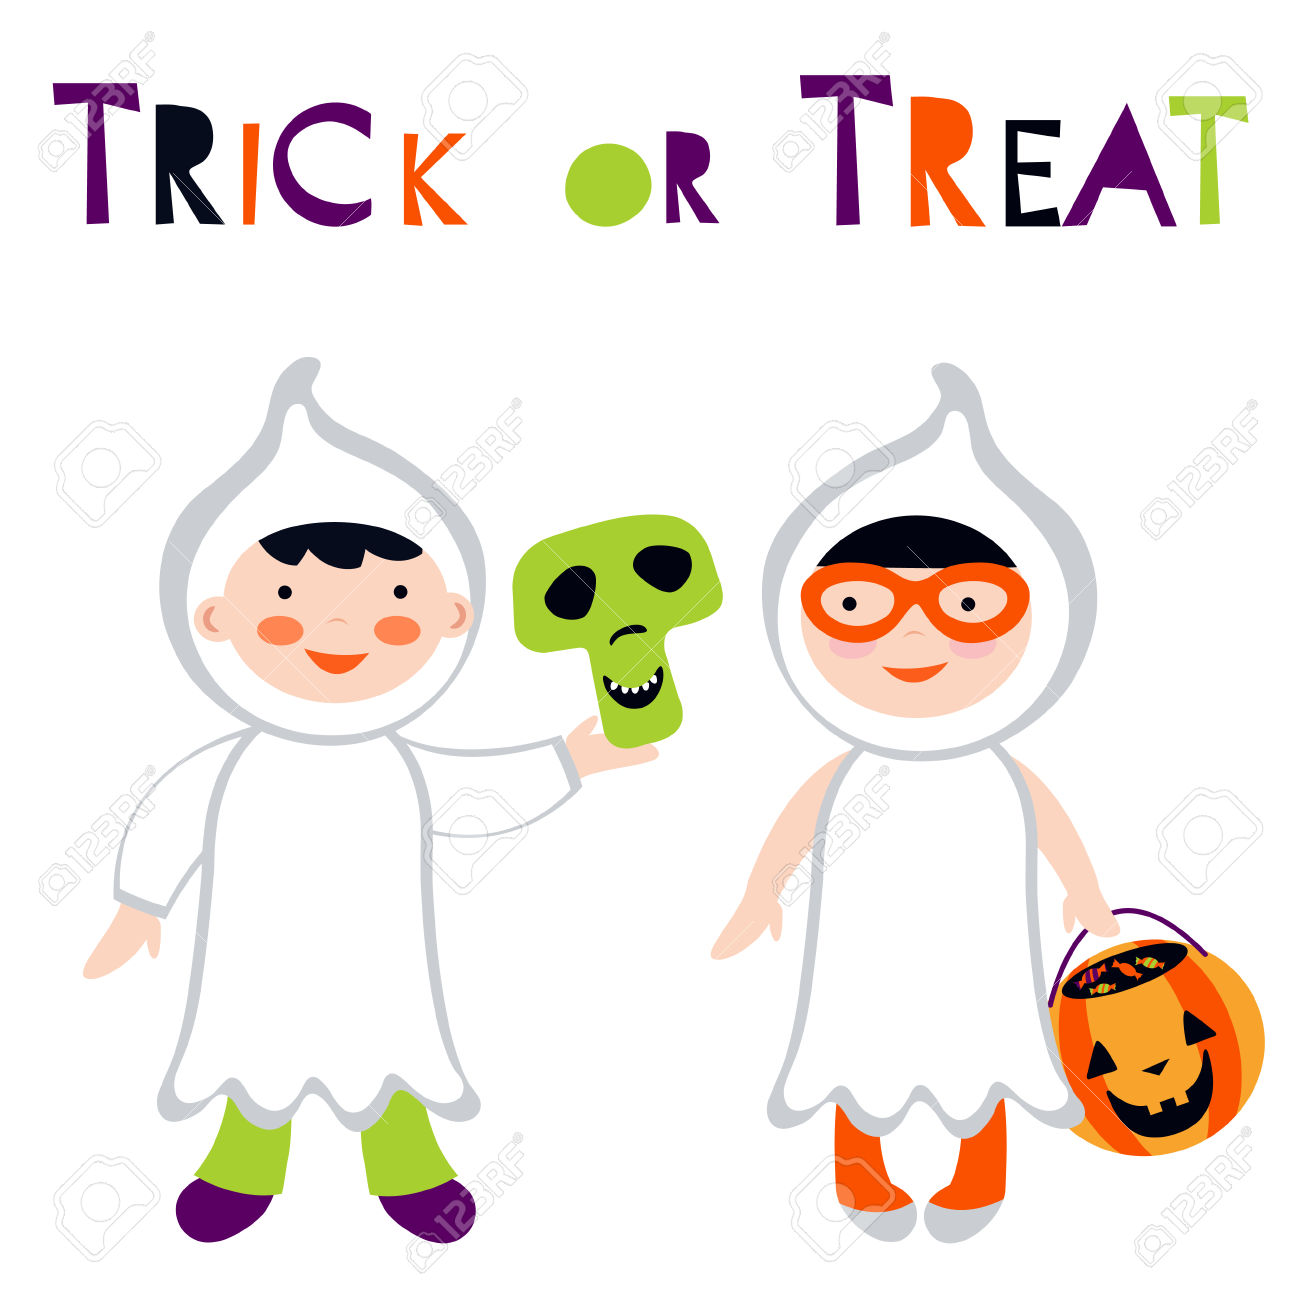 Trick Or Treat Kids Illustration Boy And Girl In Ghost Costumes.